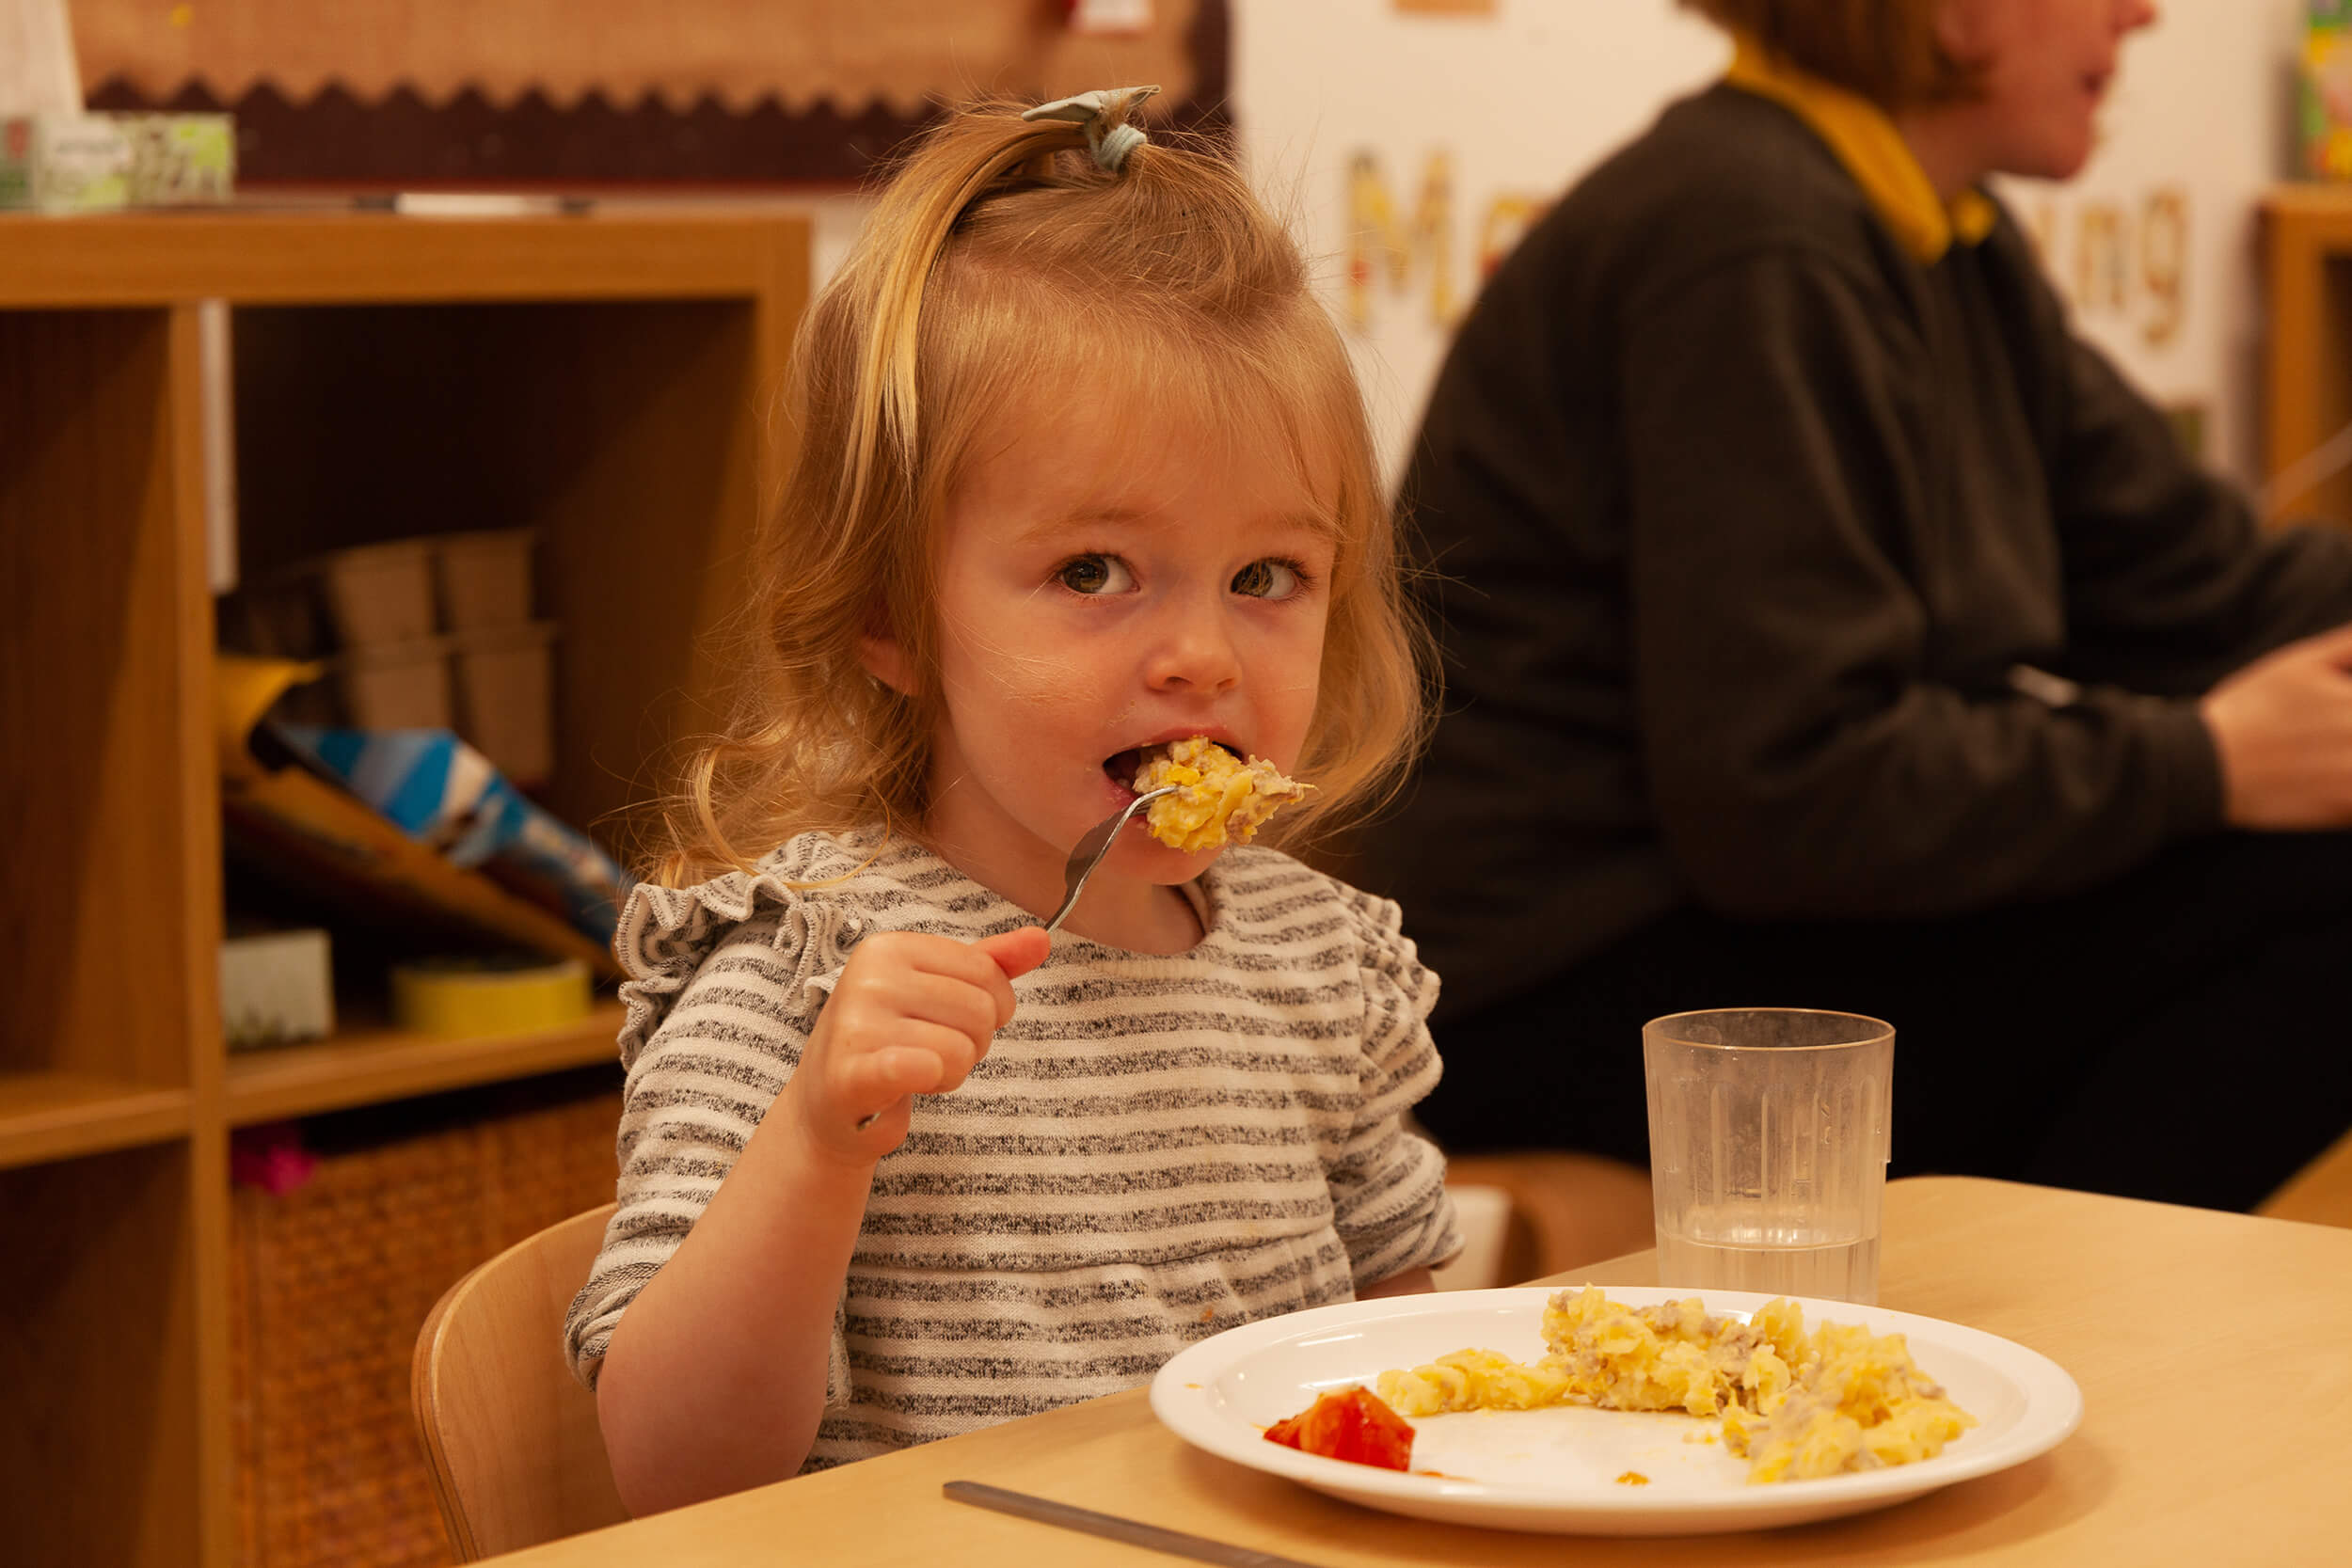 Girl eating at the table